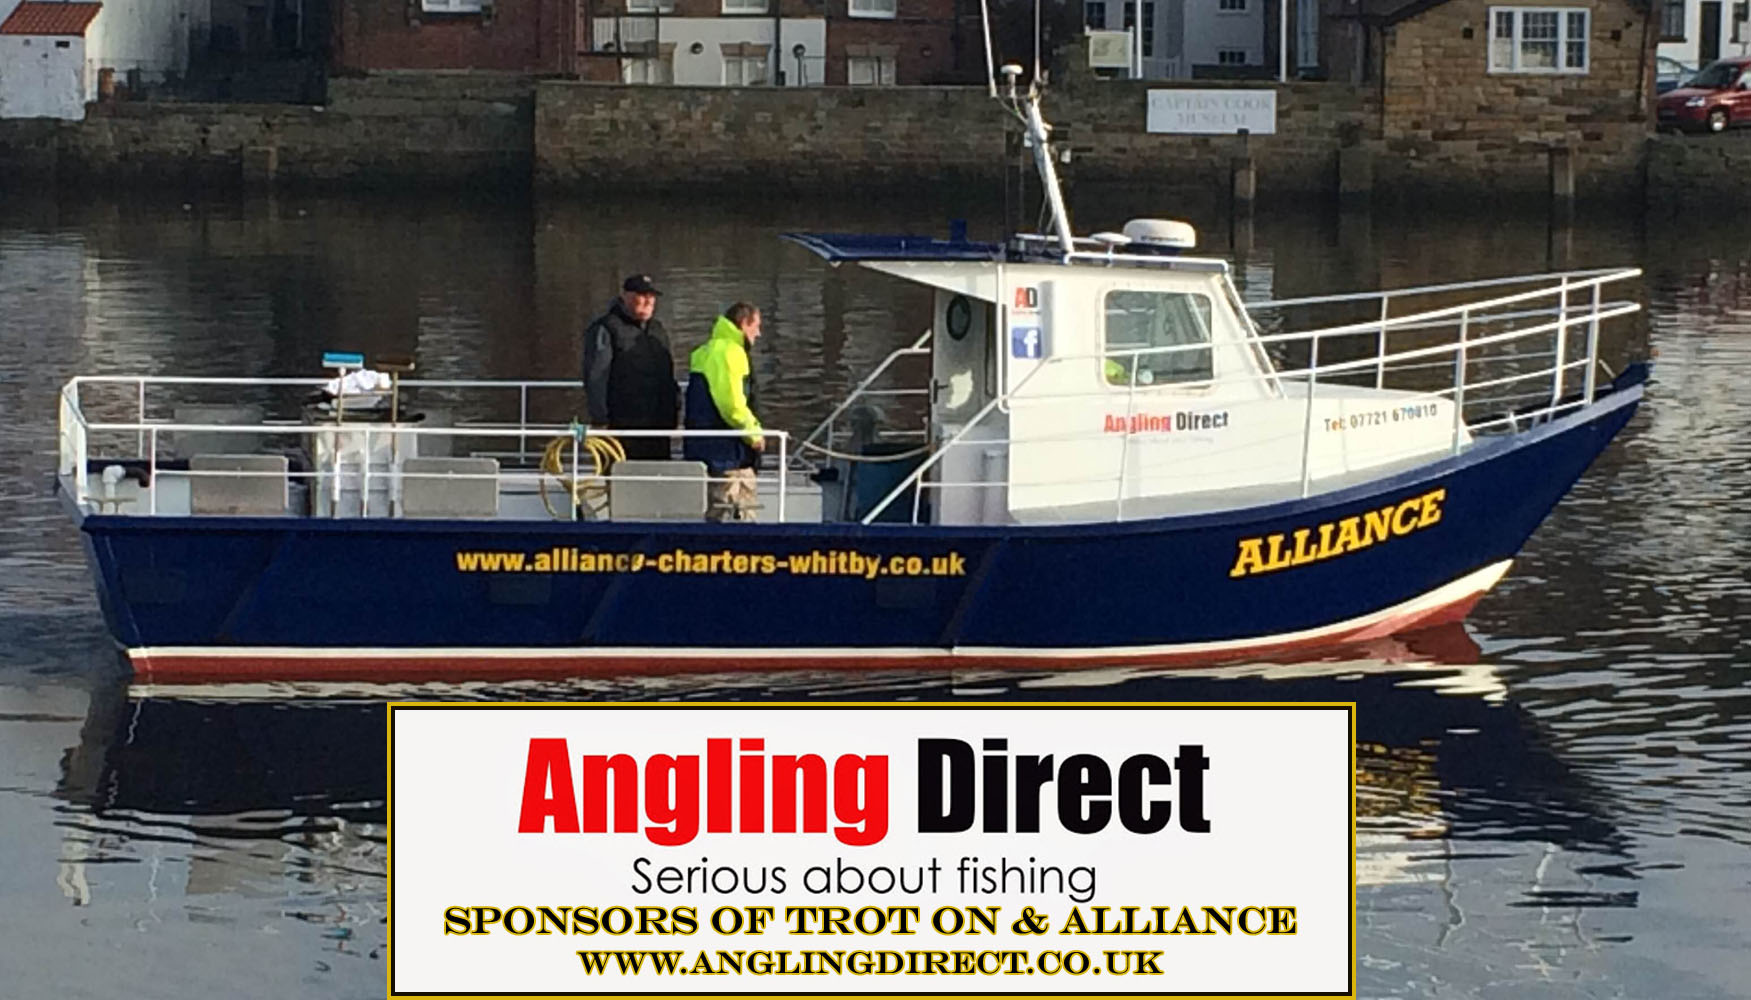 Whitby Charter Boat Alliance